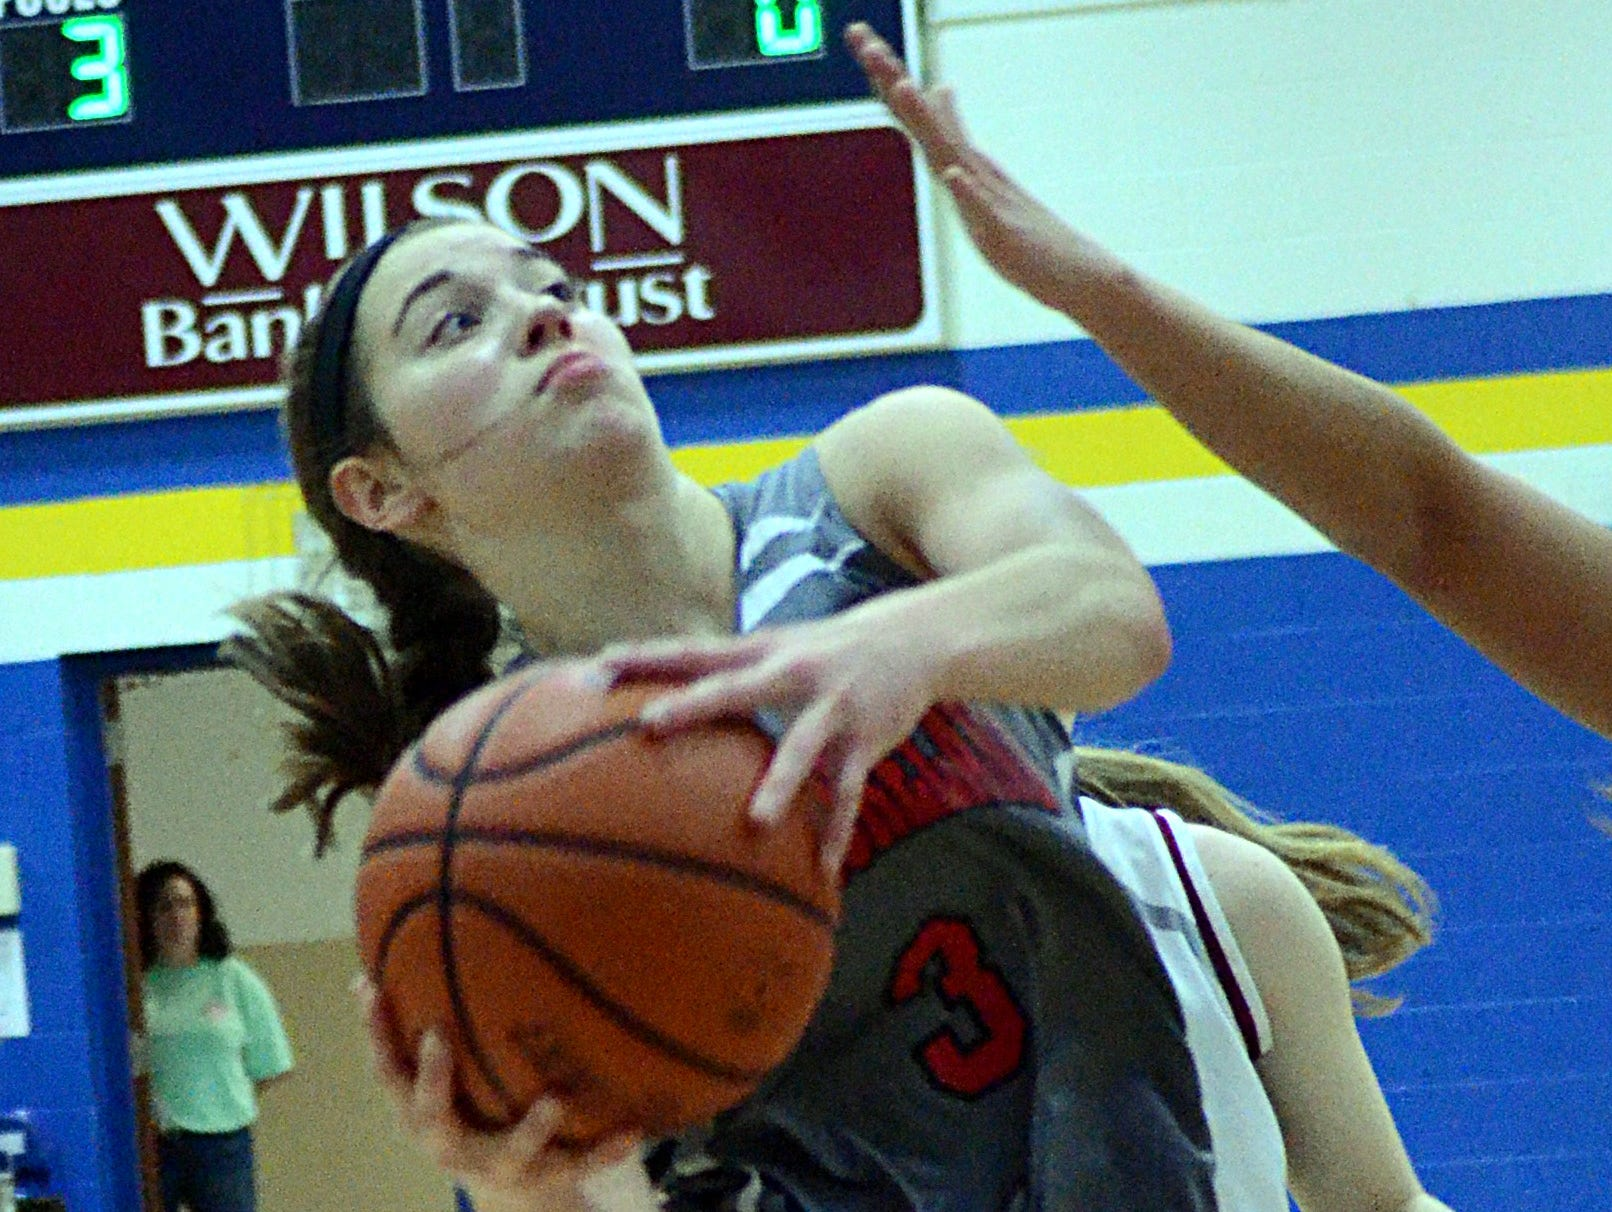 Westmoreland High junior guard Gracie Oliver elevates for a first-quarter shot in the lane. Oliver scored three points.